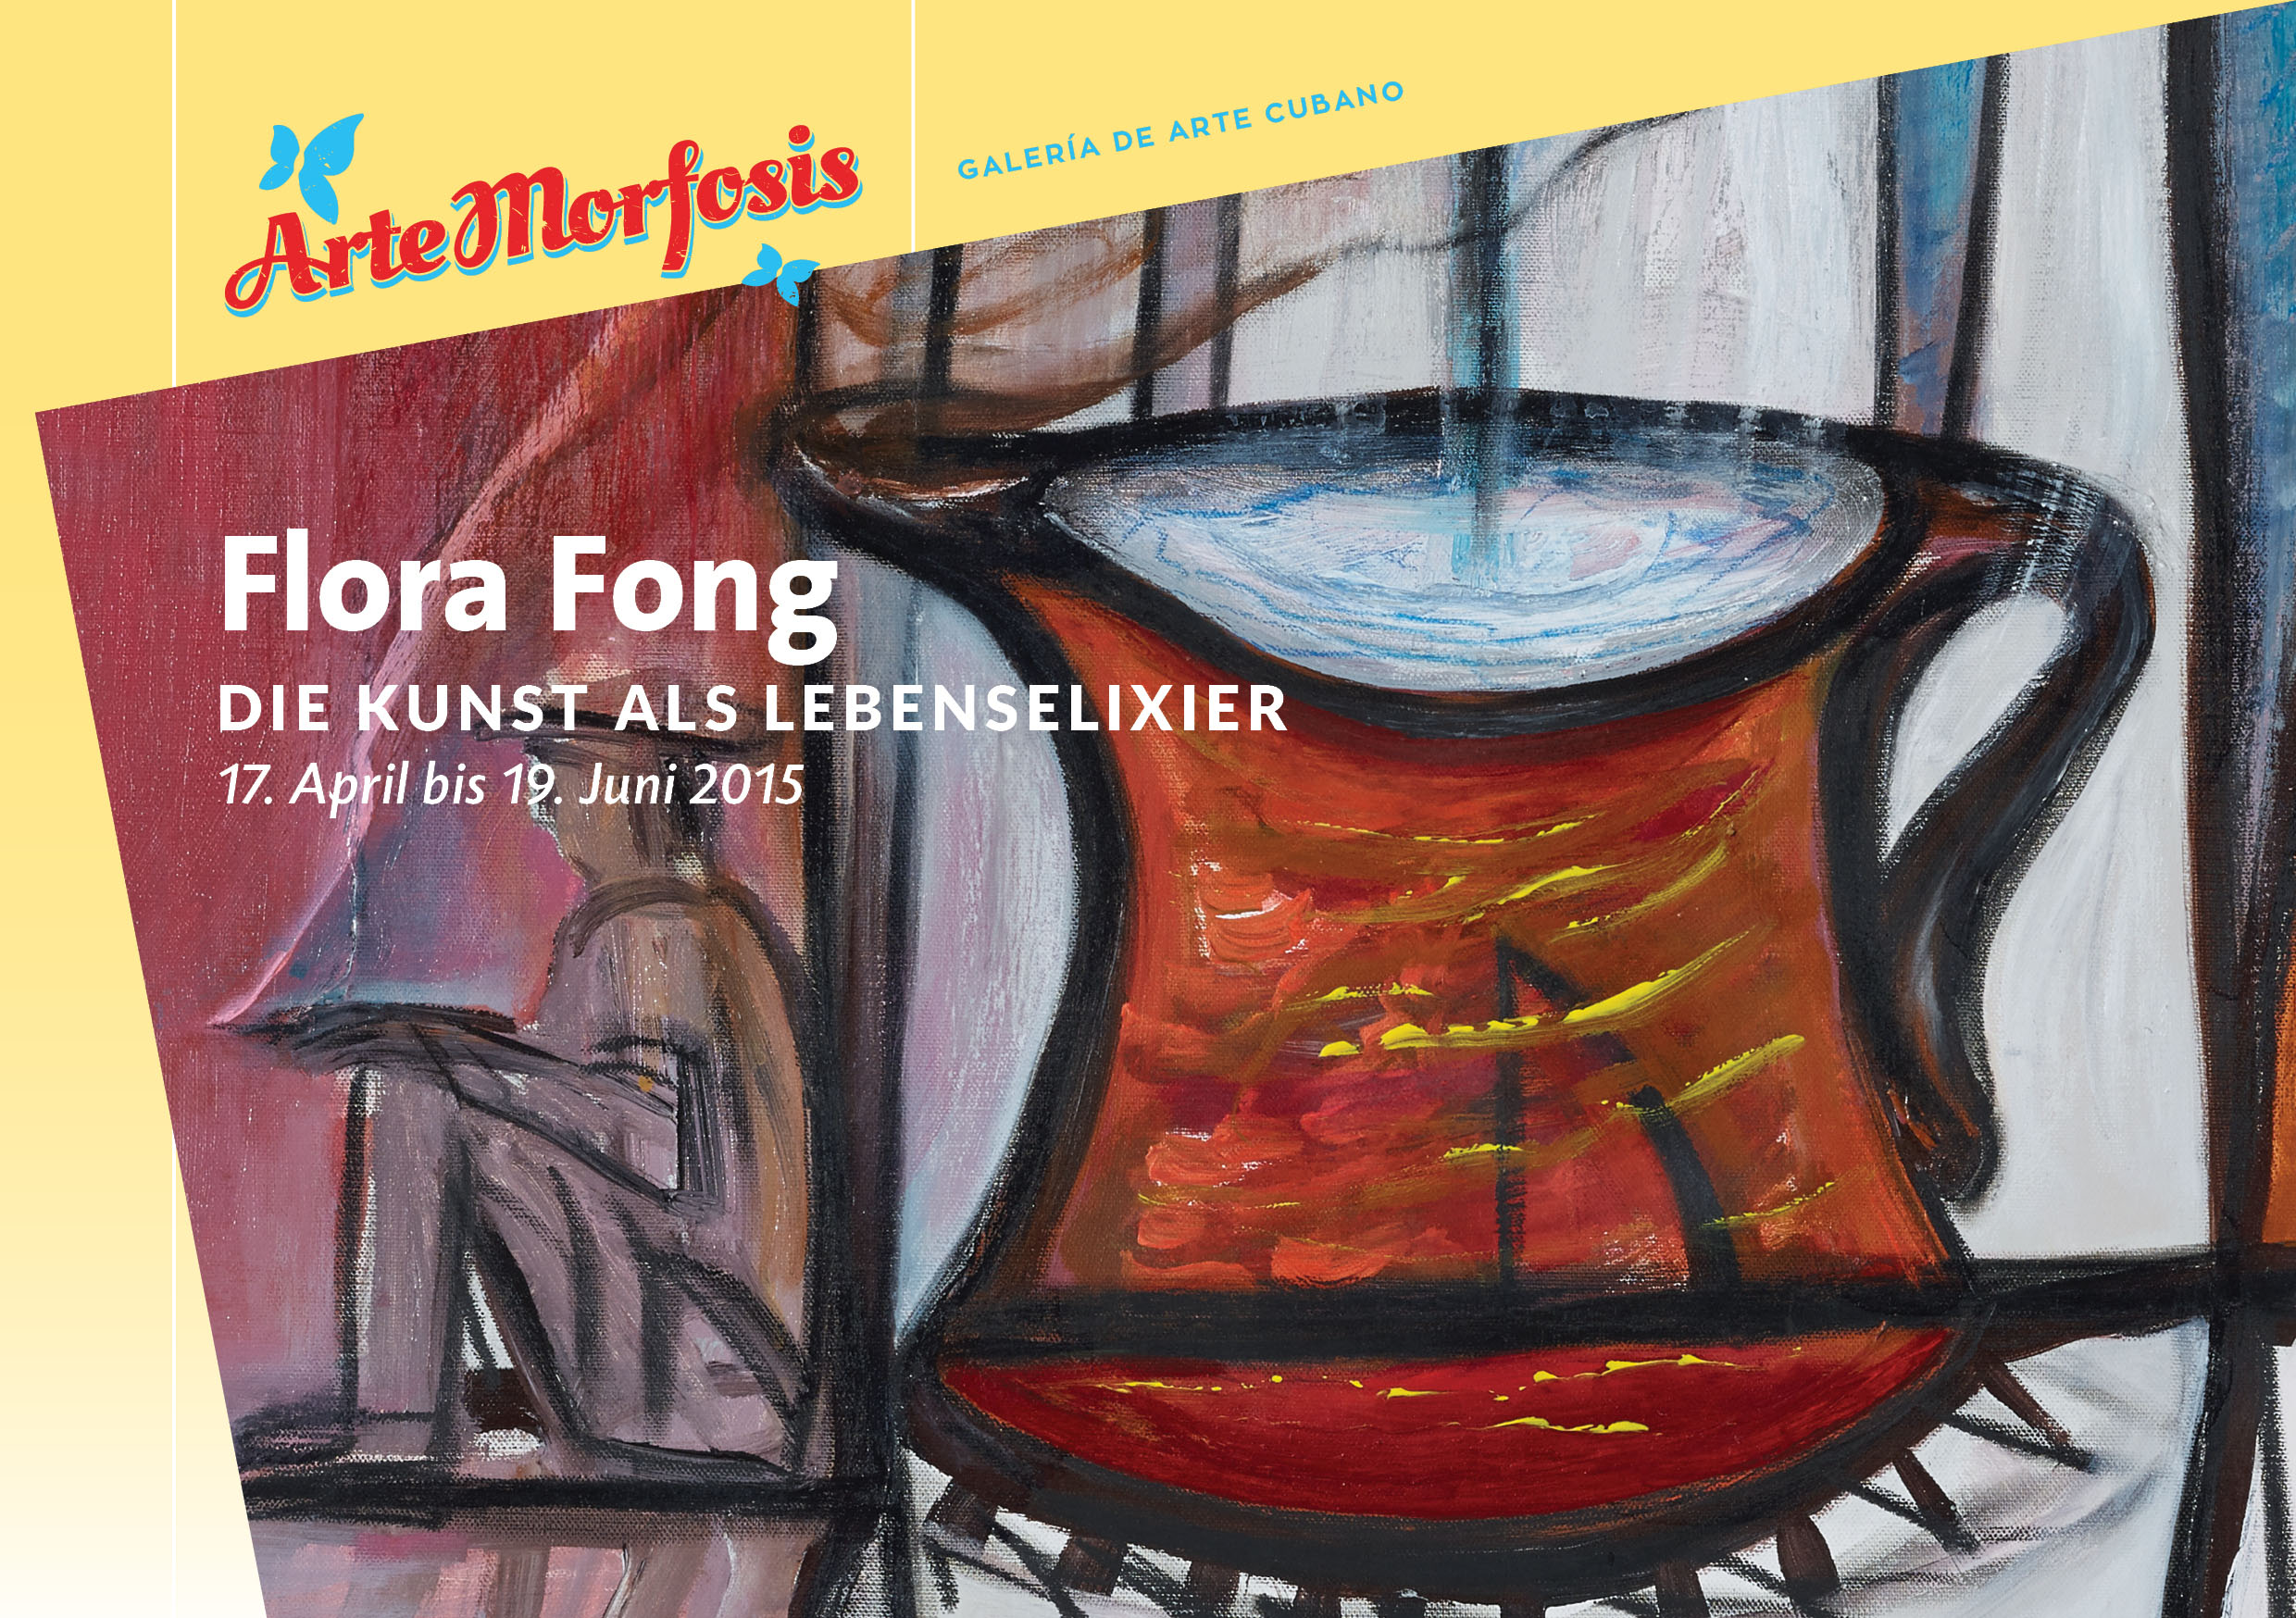 Invitation Card to Exhibitions of Flora Fong